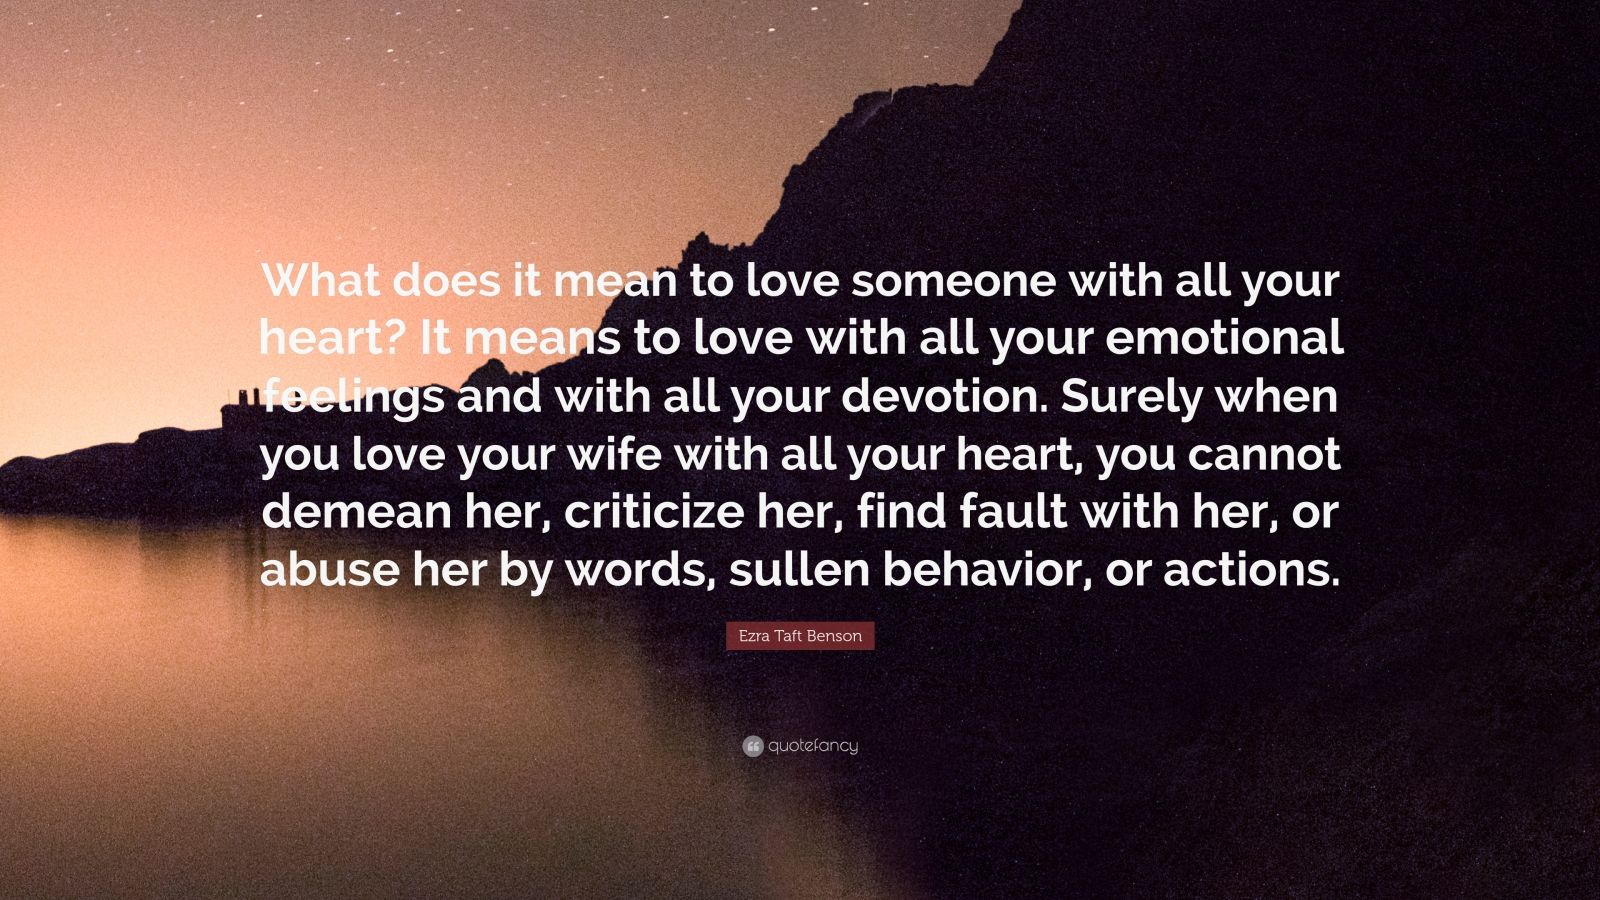 Ezra Taft Benson Quote: What does it mean to love someone